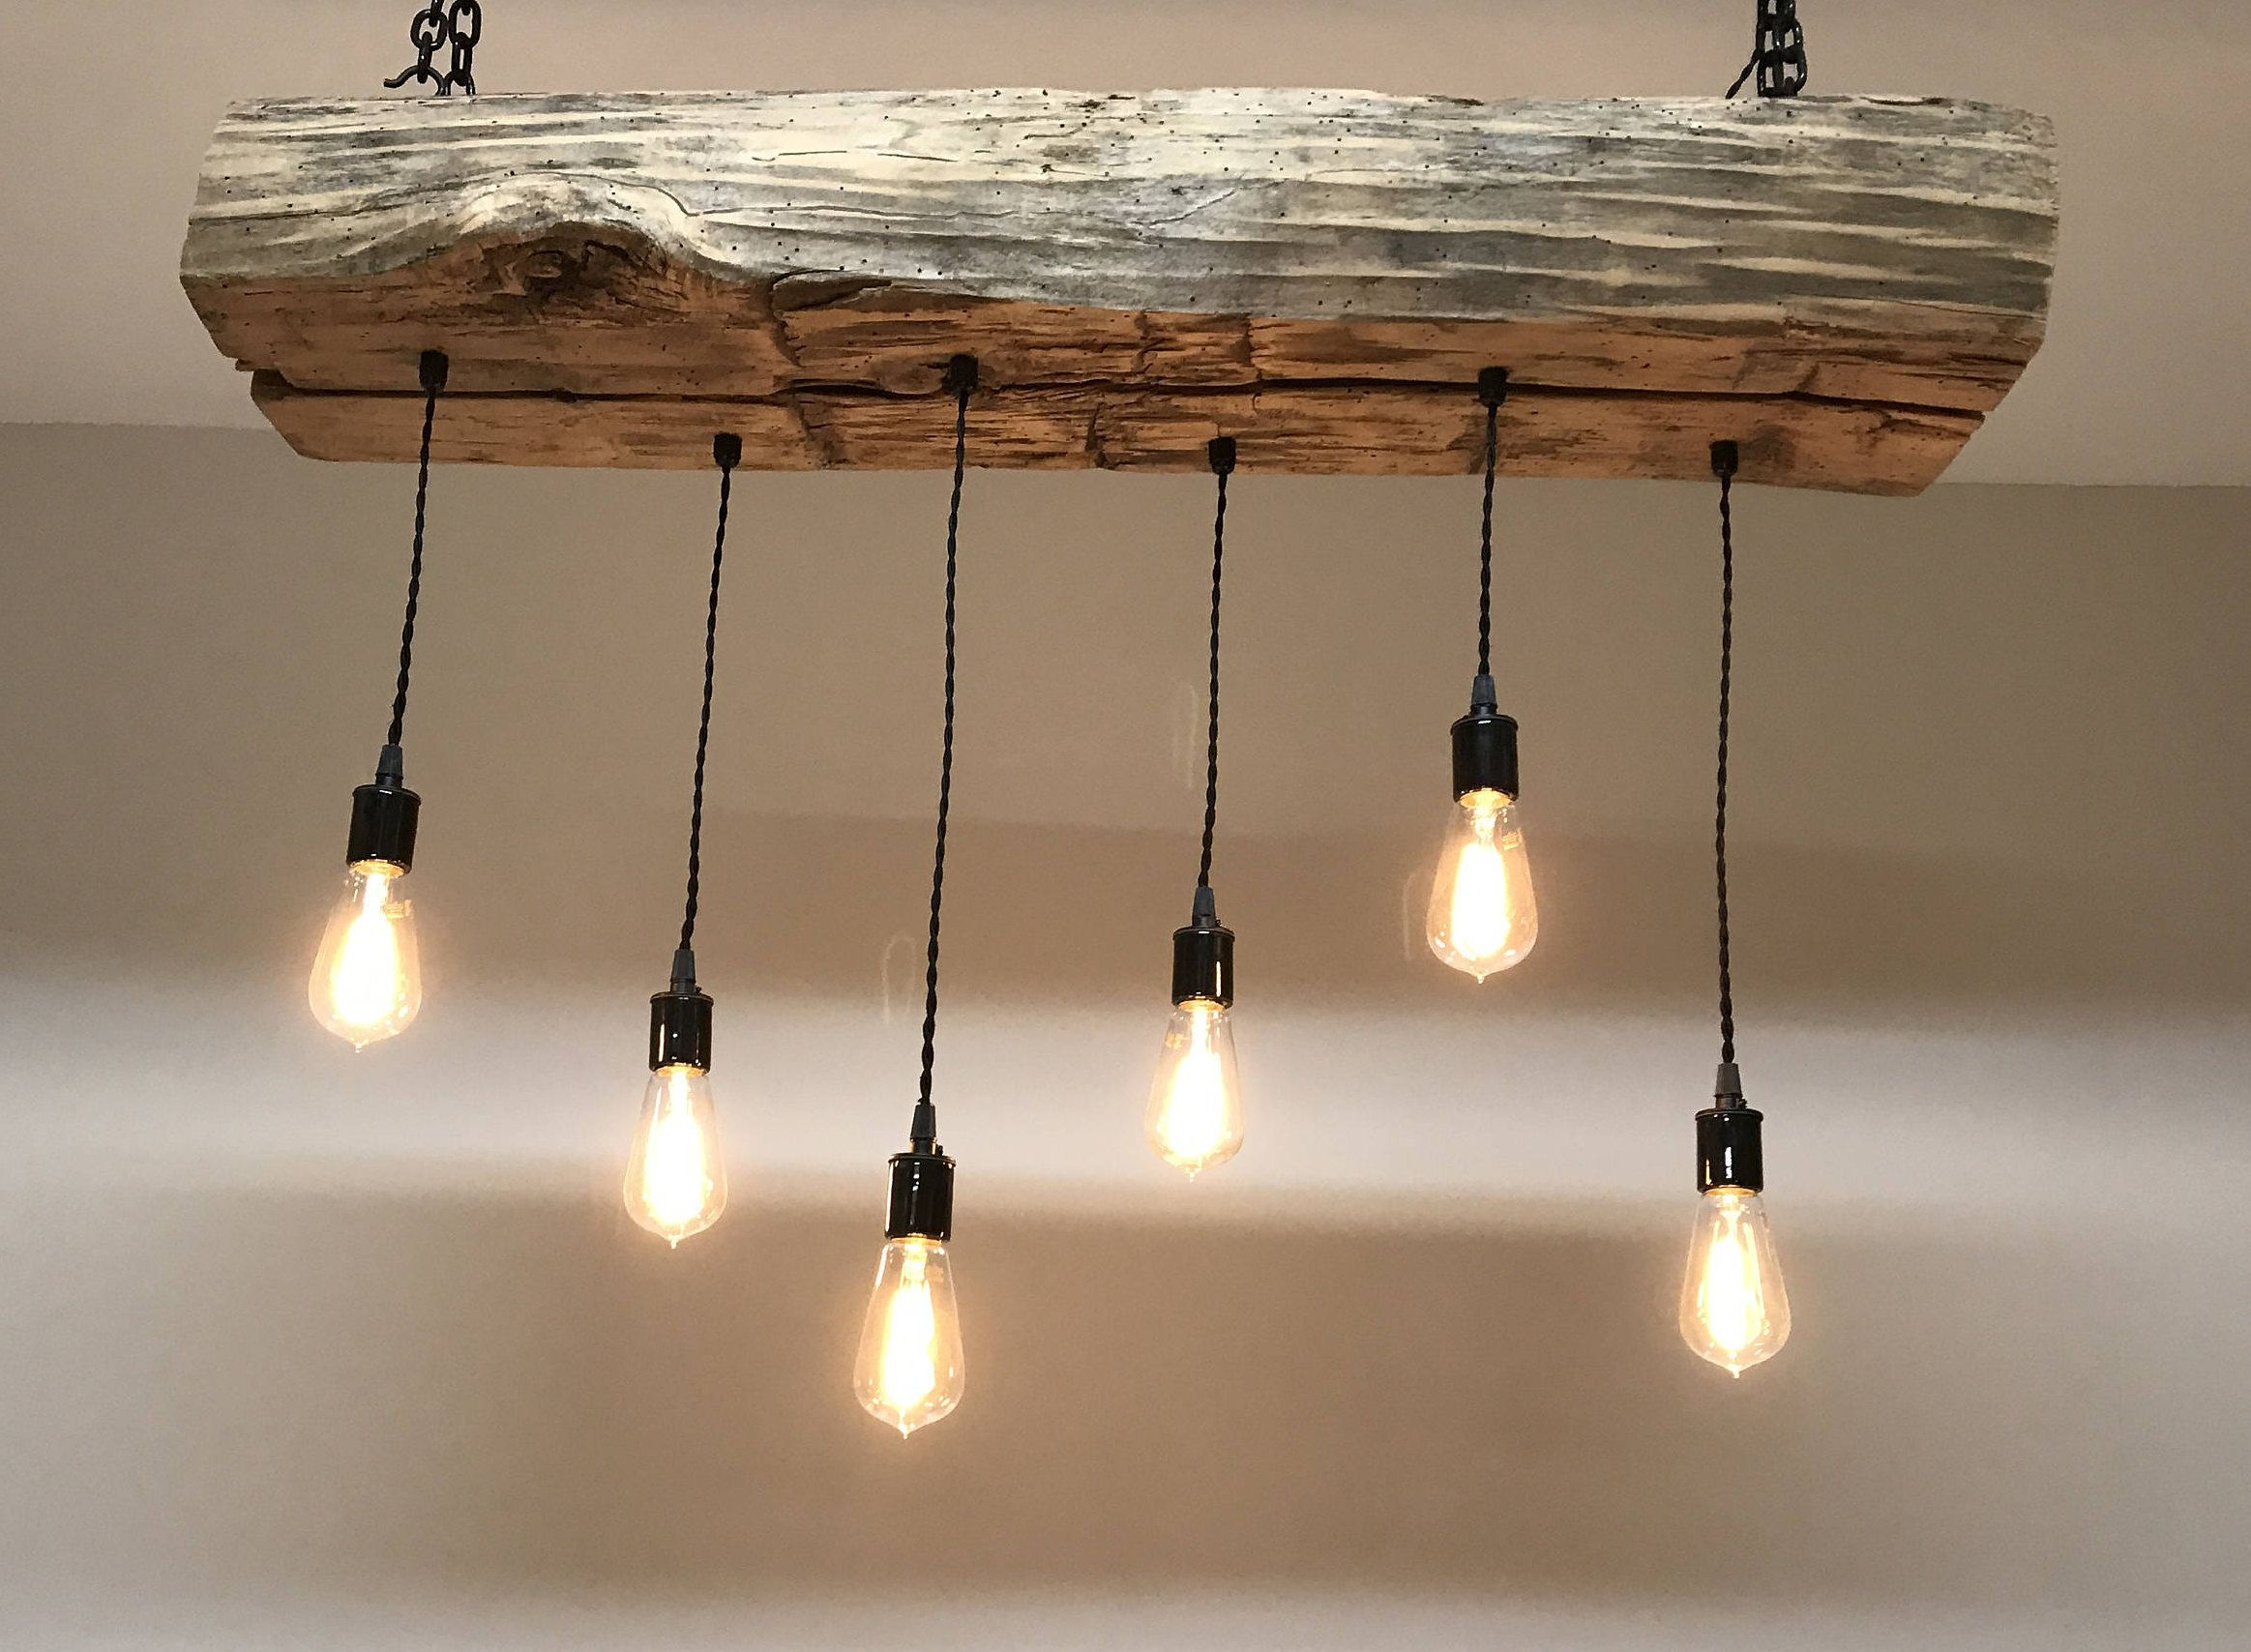 examples wall modern semi red for industrial bulb good starburst mantle metals lighting edison with cage fixture mount upcycled picture pendant ceiling diffuser plush light hanging flush in rope